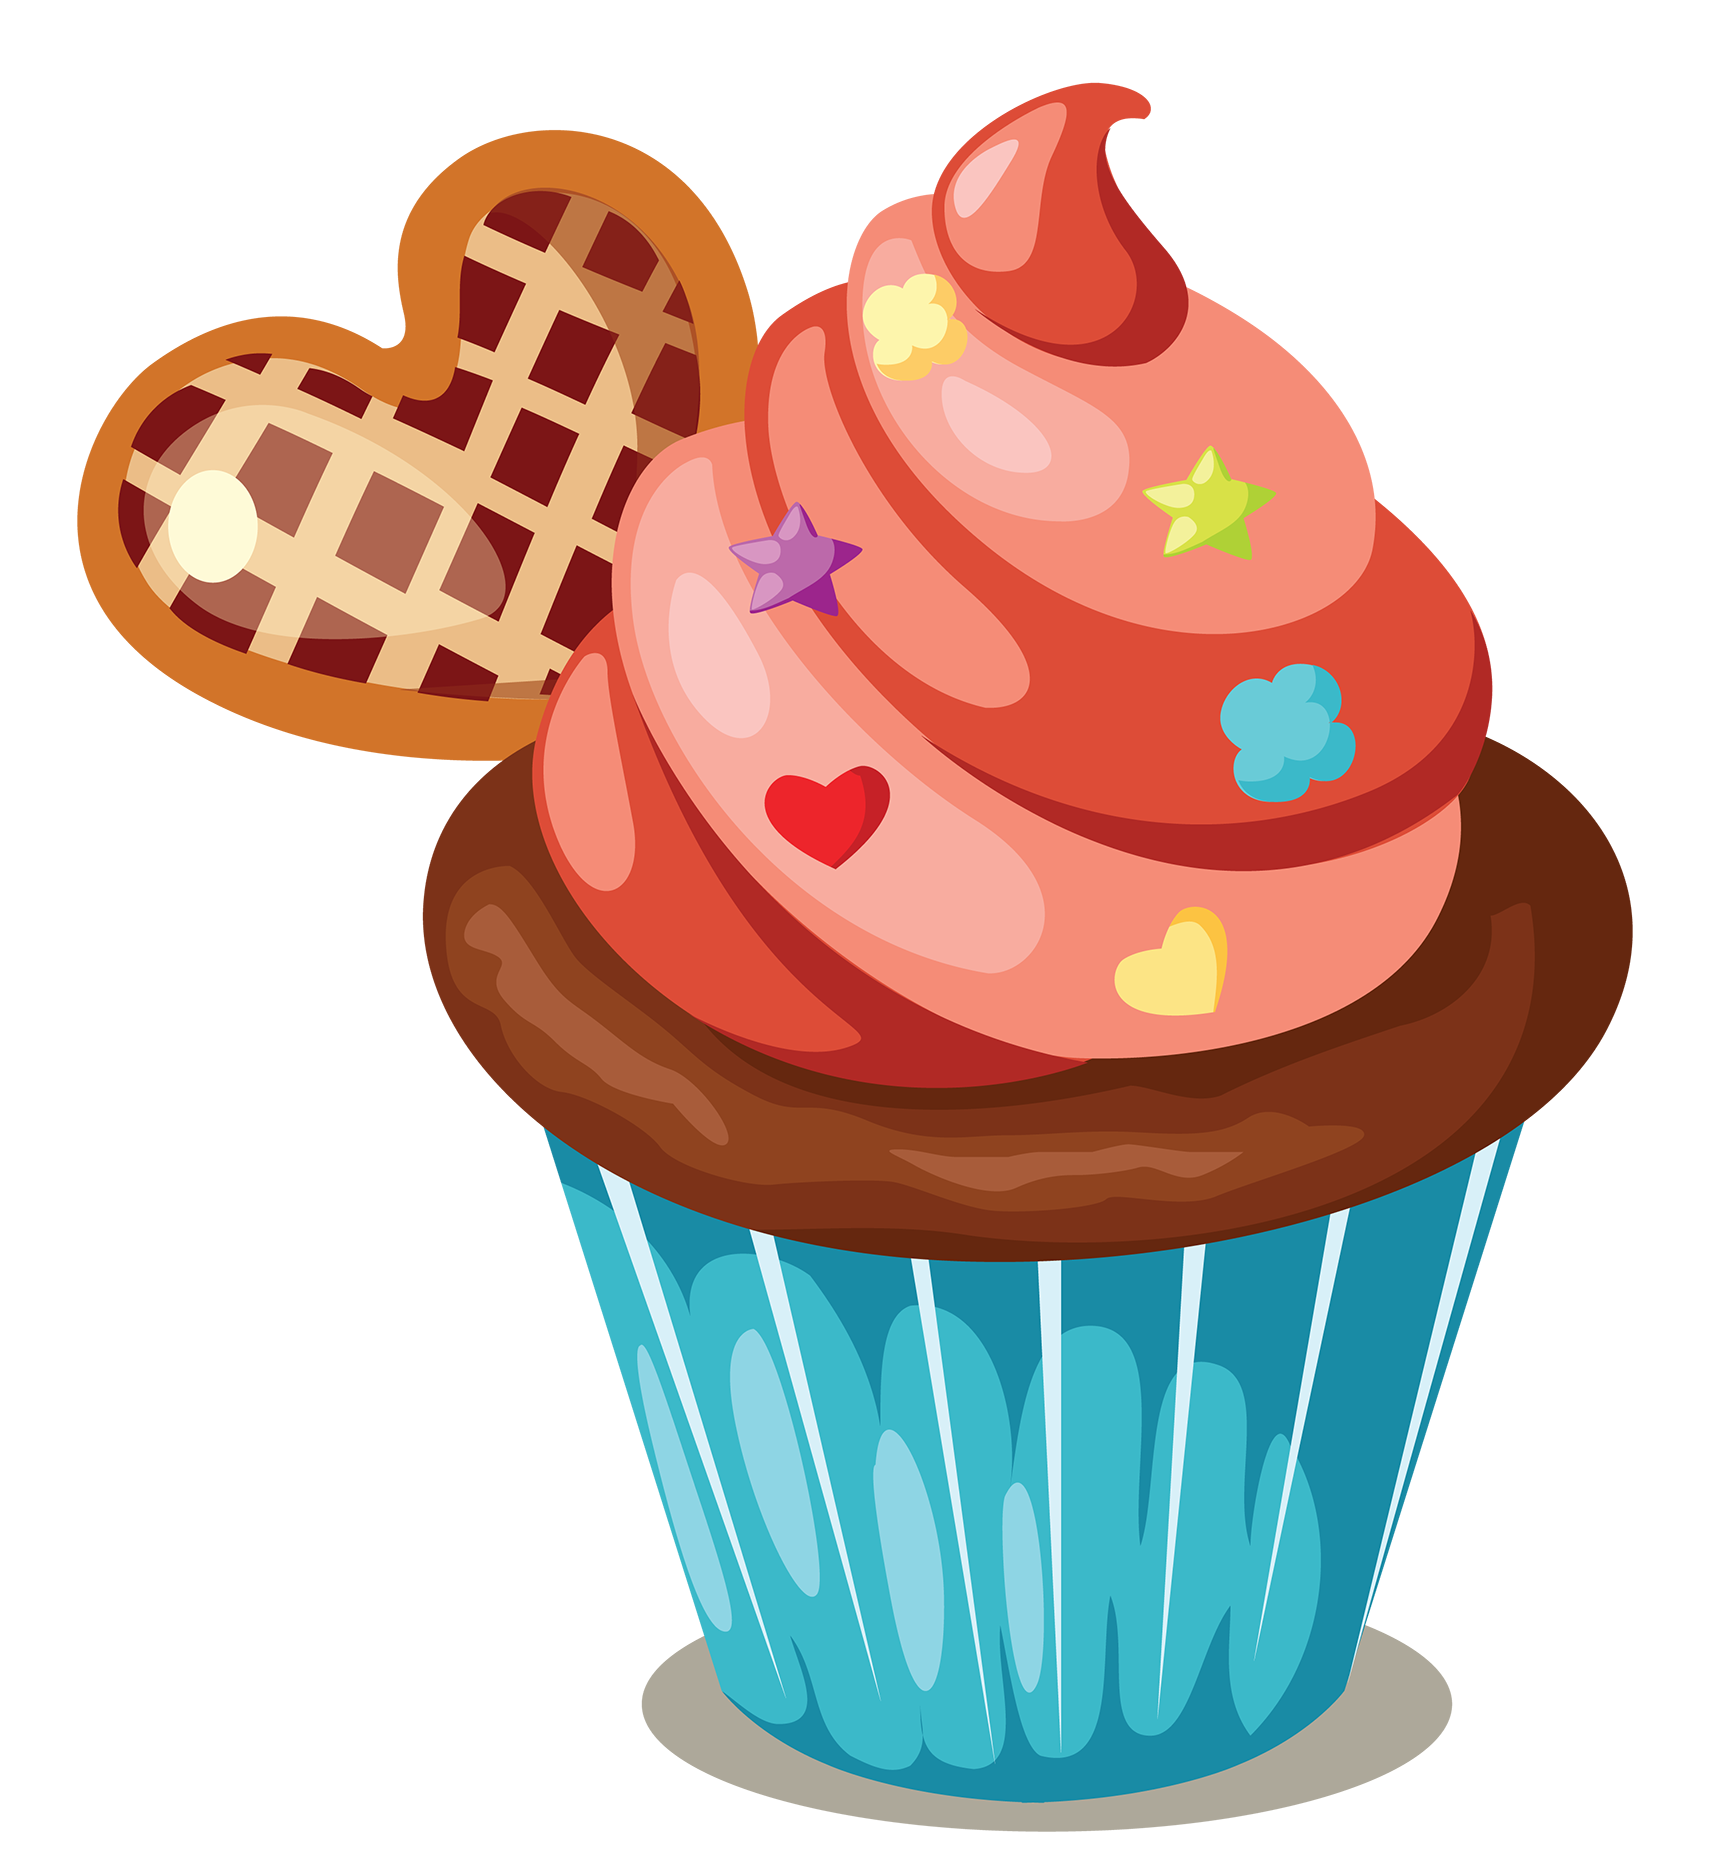 Apple muffin clipart clipart library library Cupcake Icing Birthday cake Muffin Clip art - Delicious cupcakes ... clipart library library